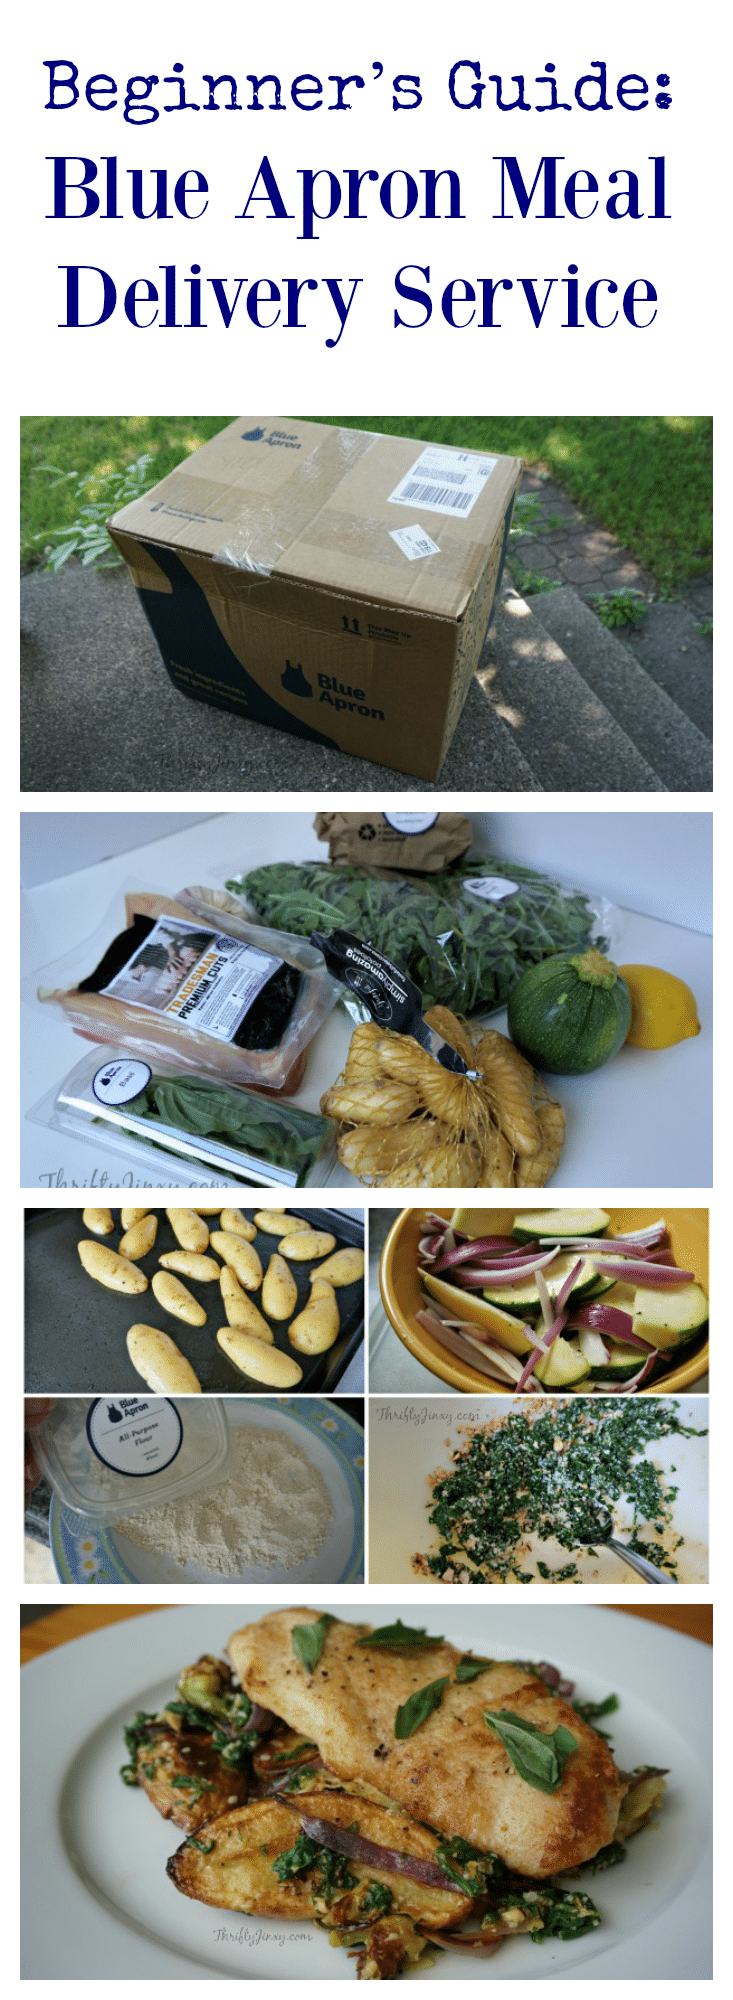 Beginner's Guide Blue Apron Meal Delivery Service